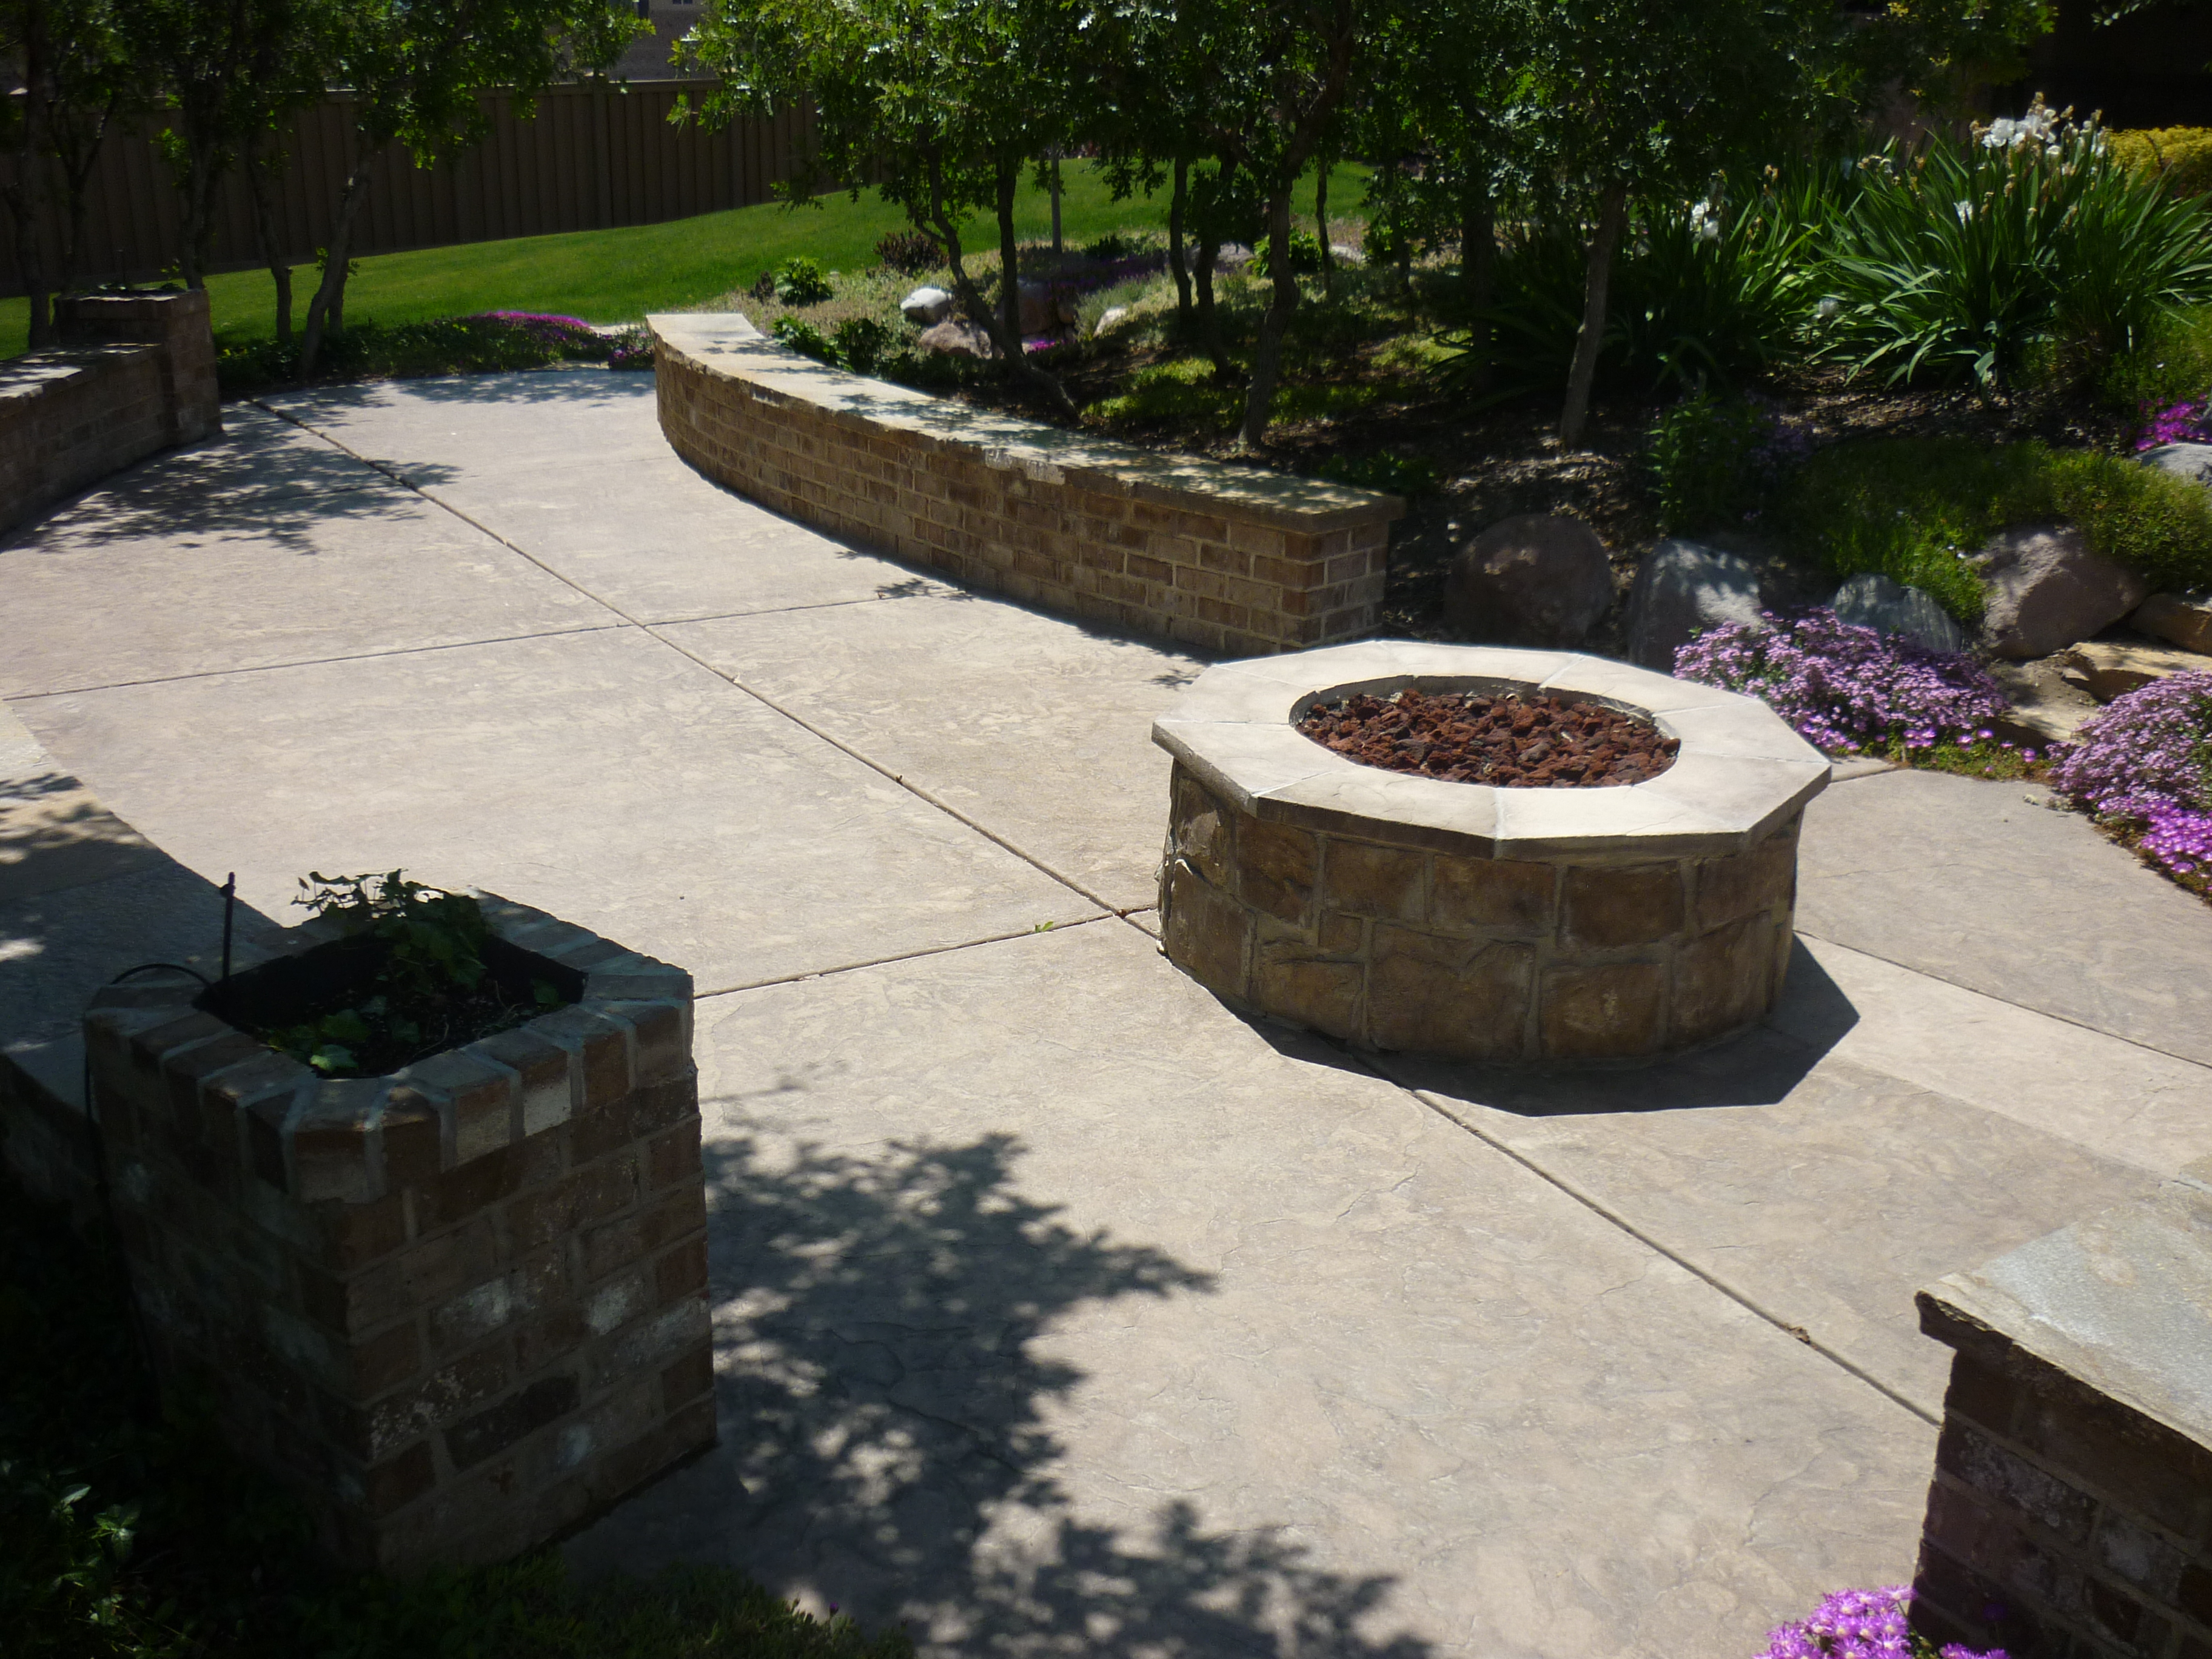 utah landscaping company chris jensen landscaping introduces a kid